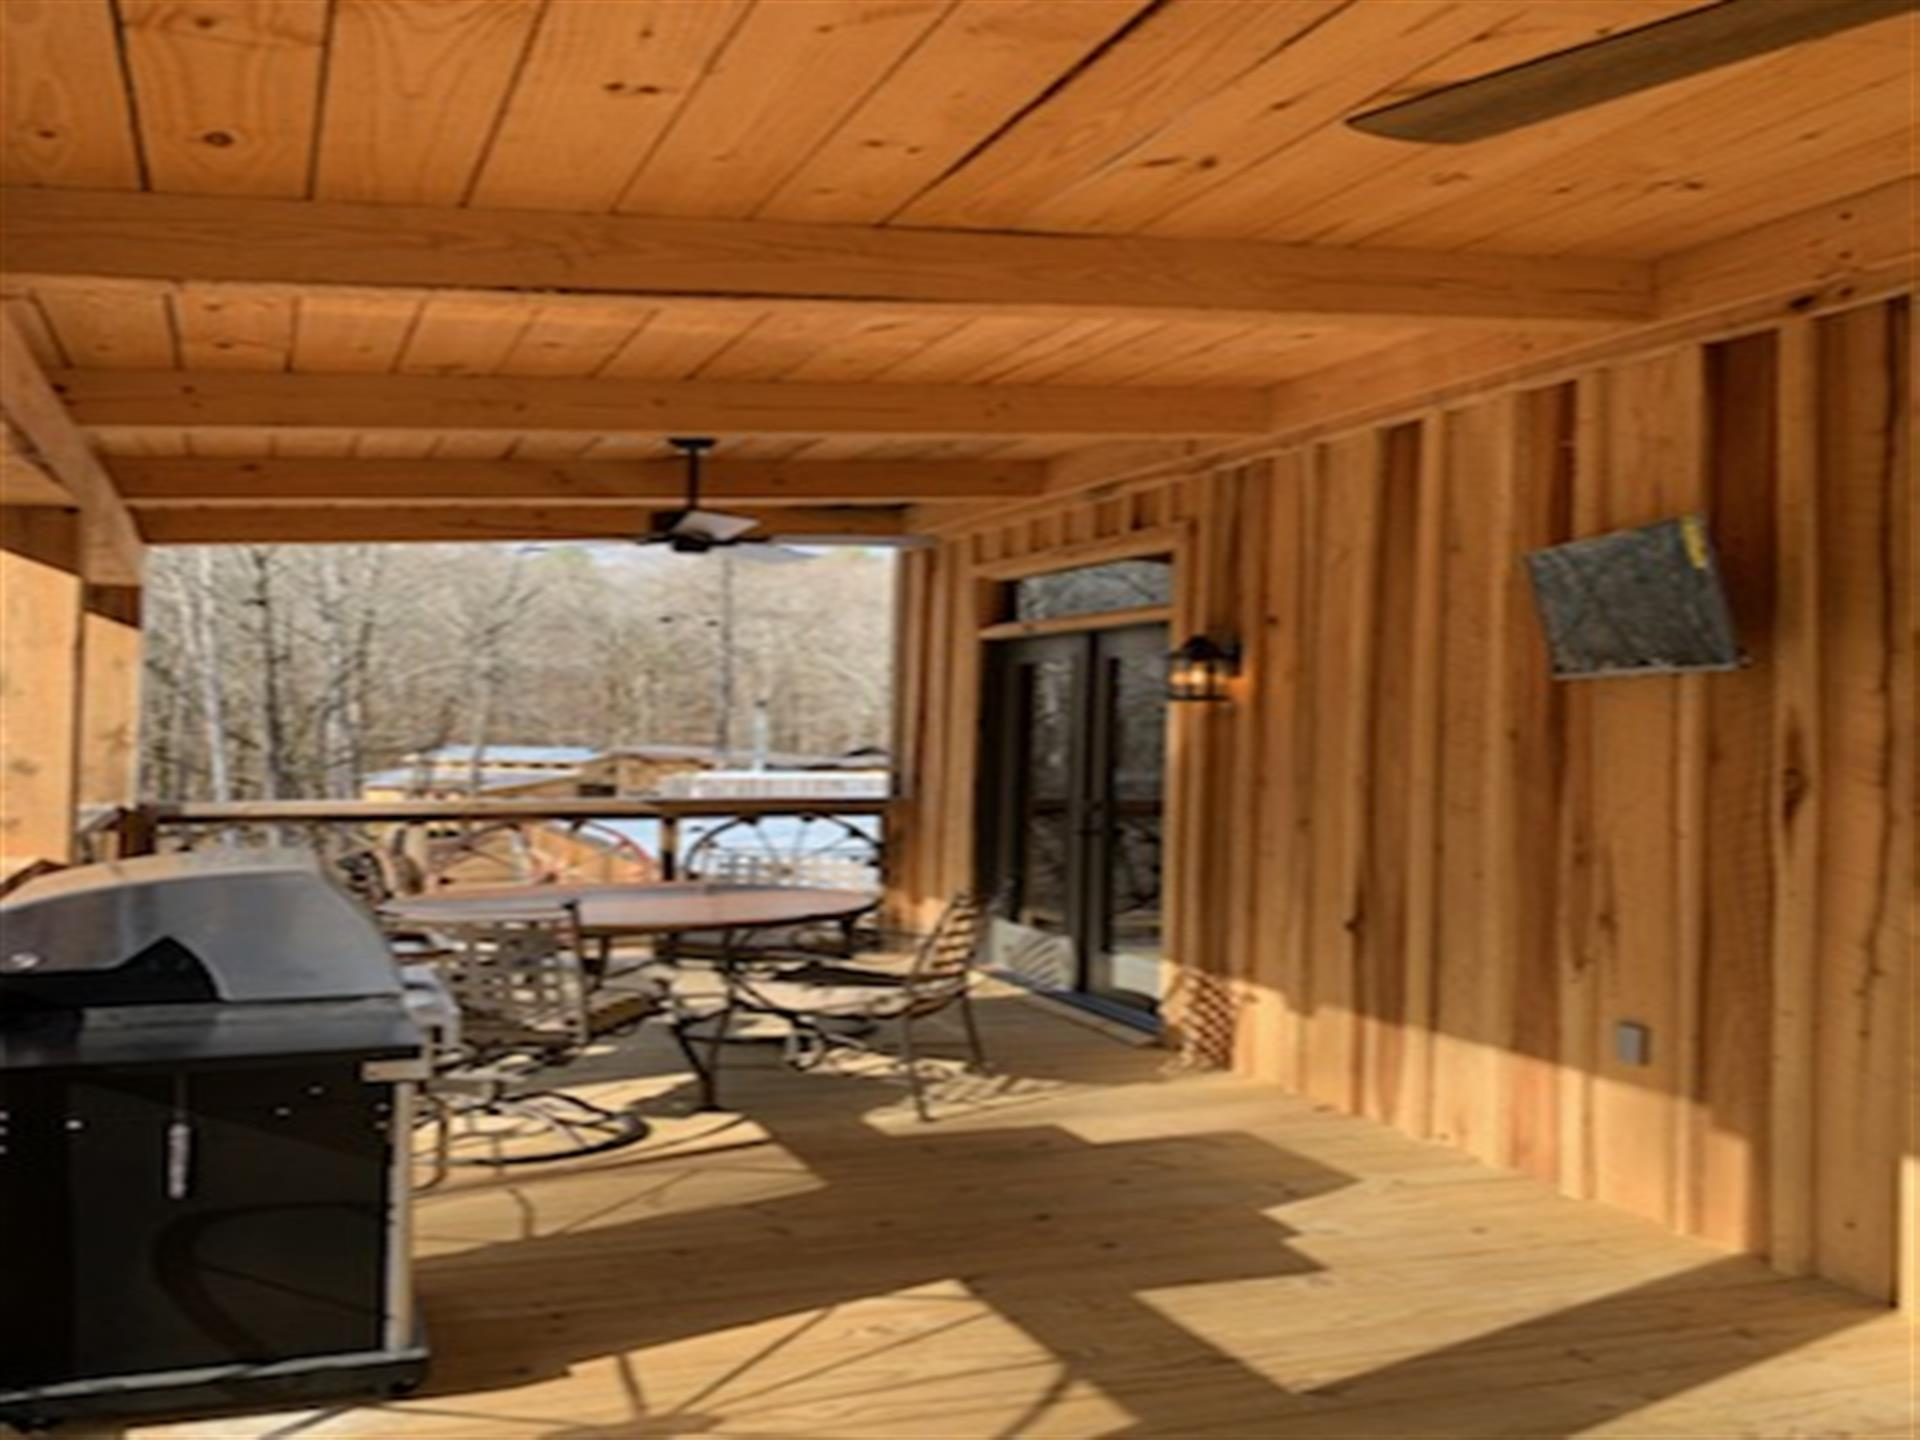 all wooden outside deck with wooden ceiling. circle table with chairs, fan above the table, tv on wall and grill to the left.